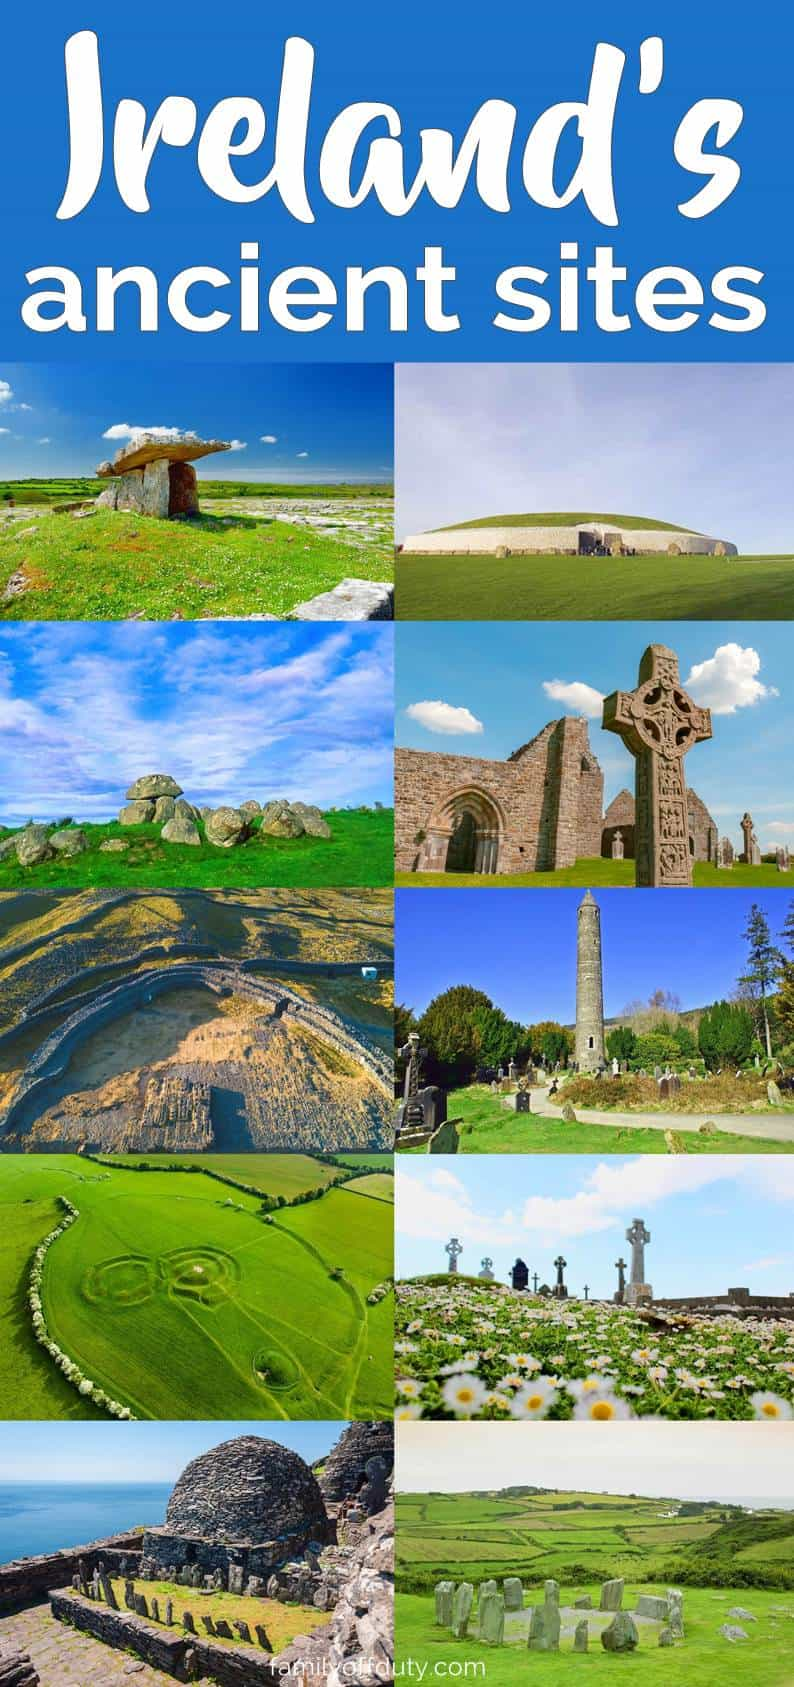 Ireland's ancient site worth visiting